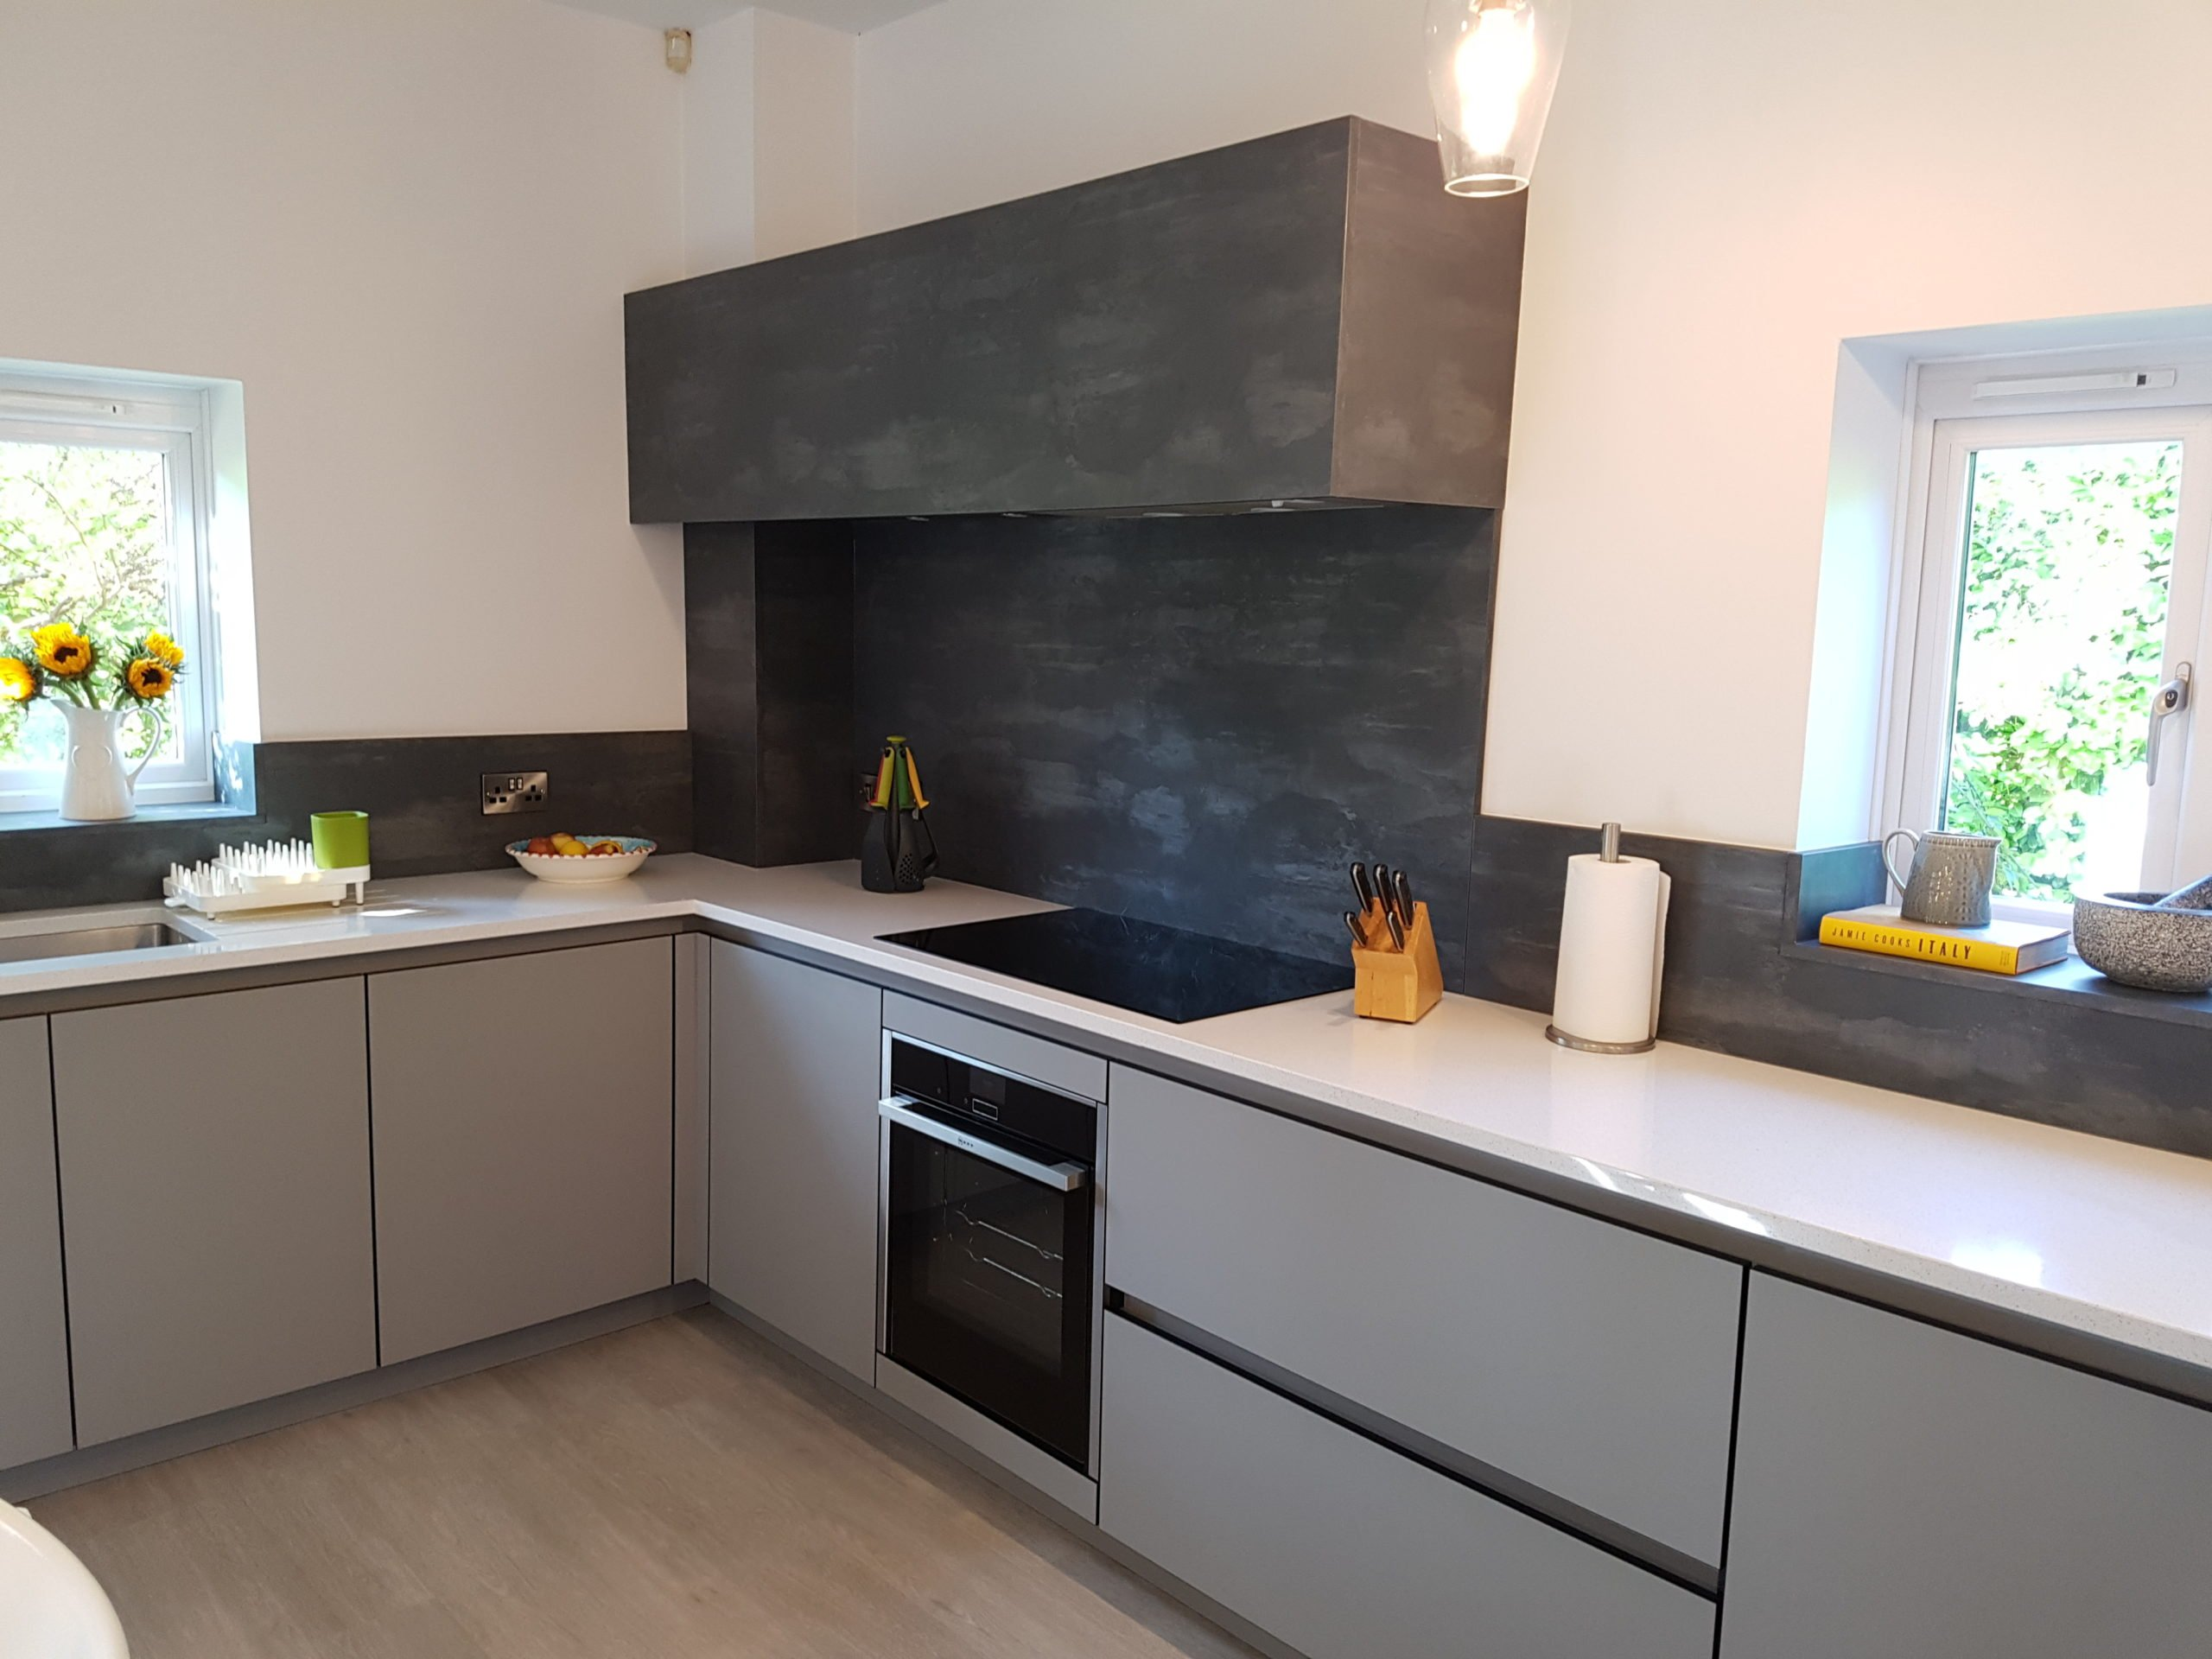 Modern grey kitchen with Charcol backsplash and extractor